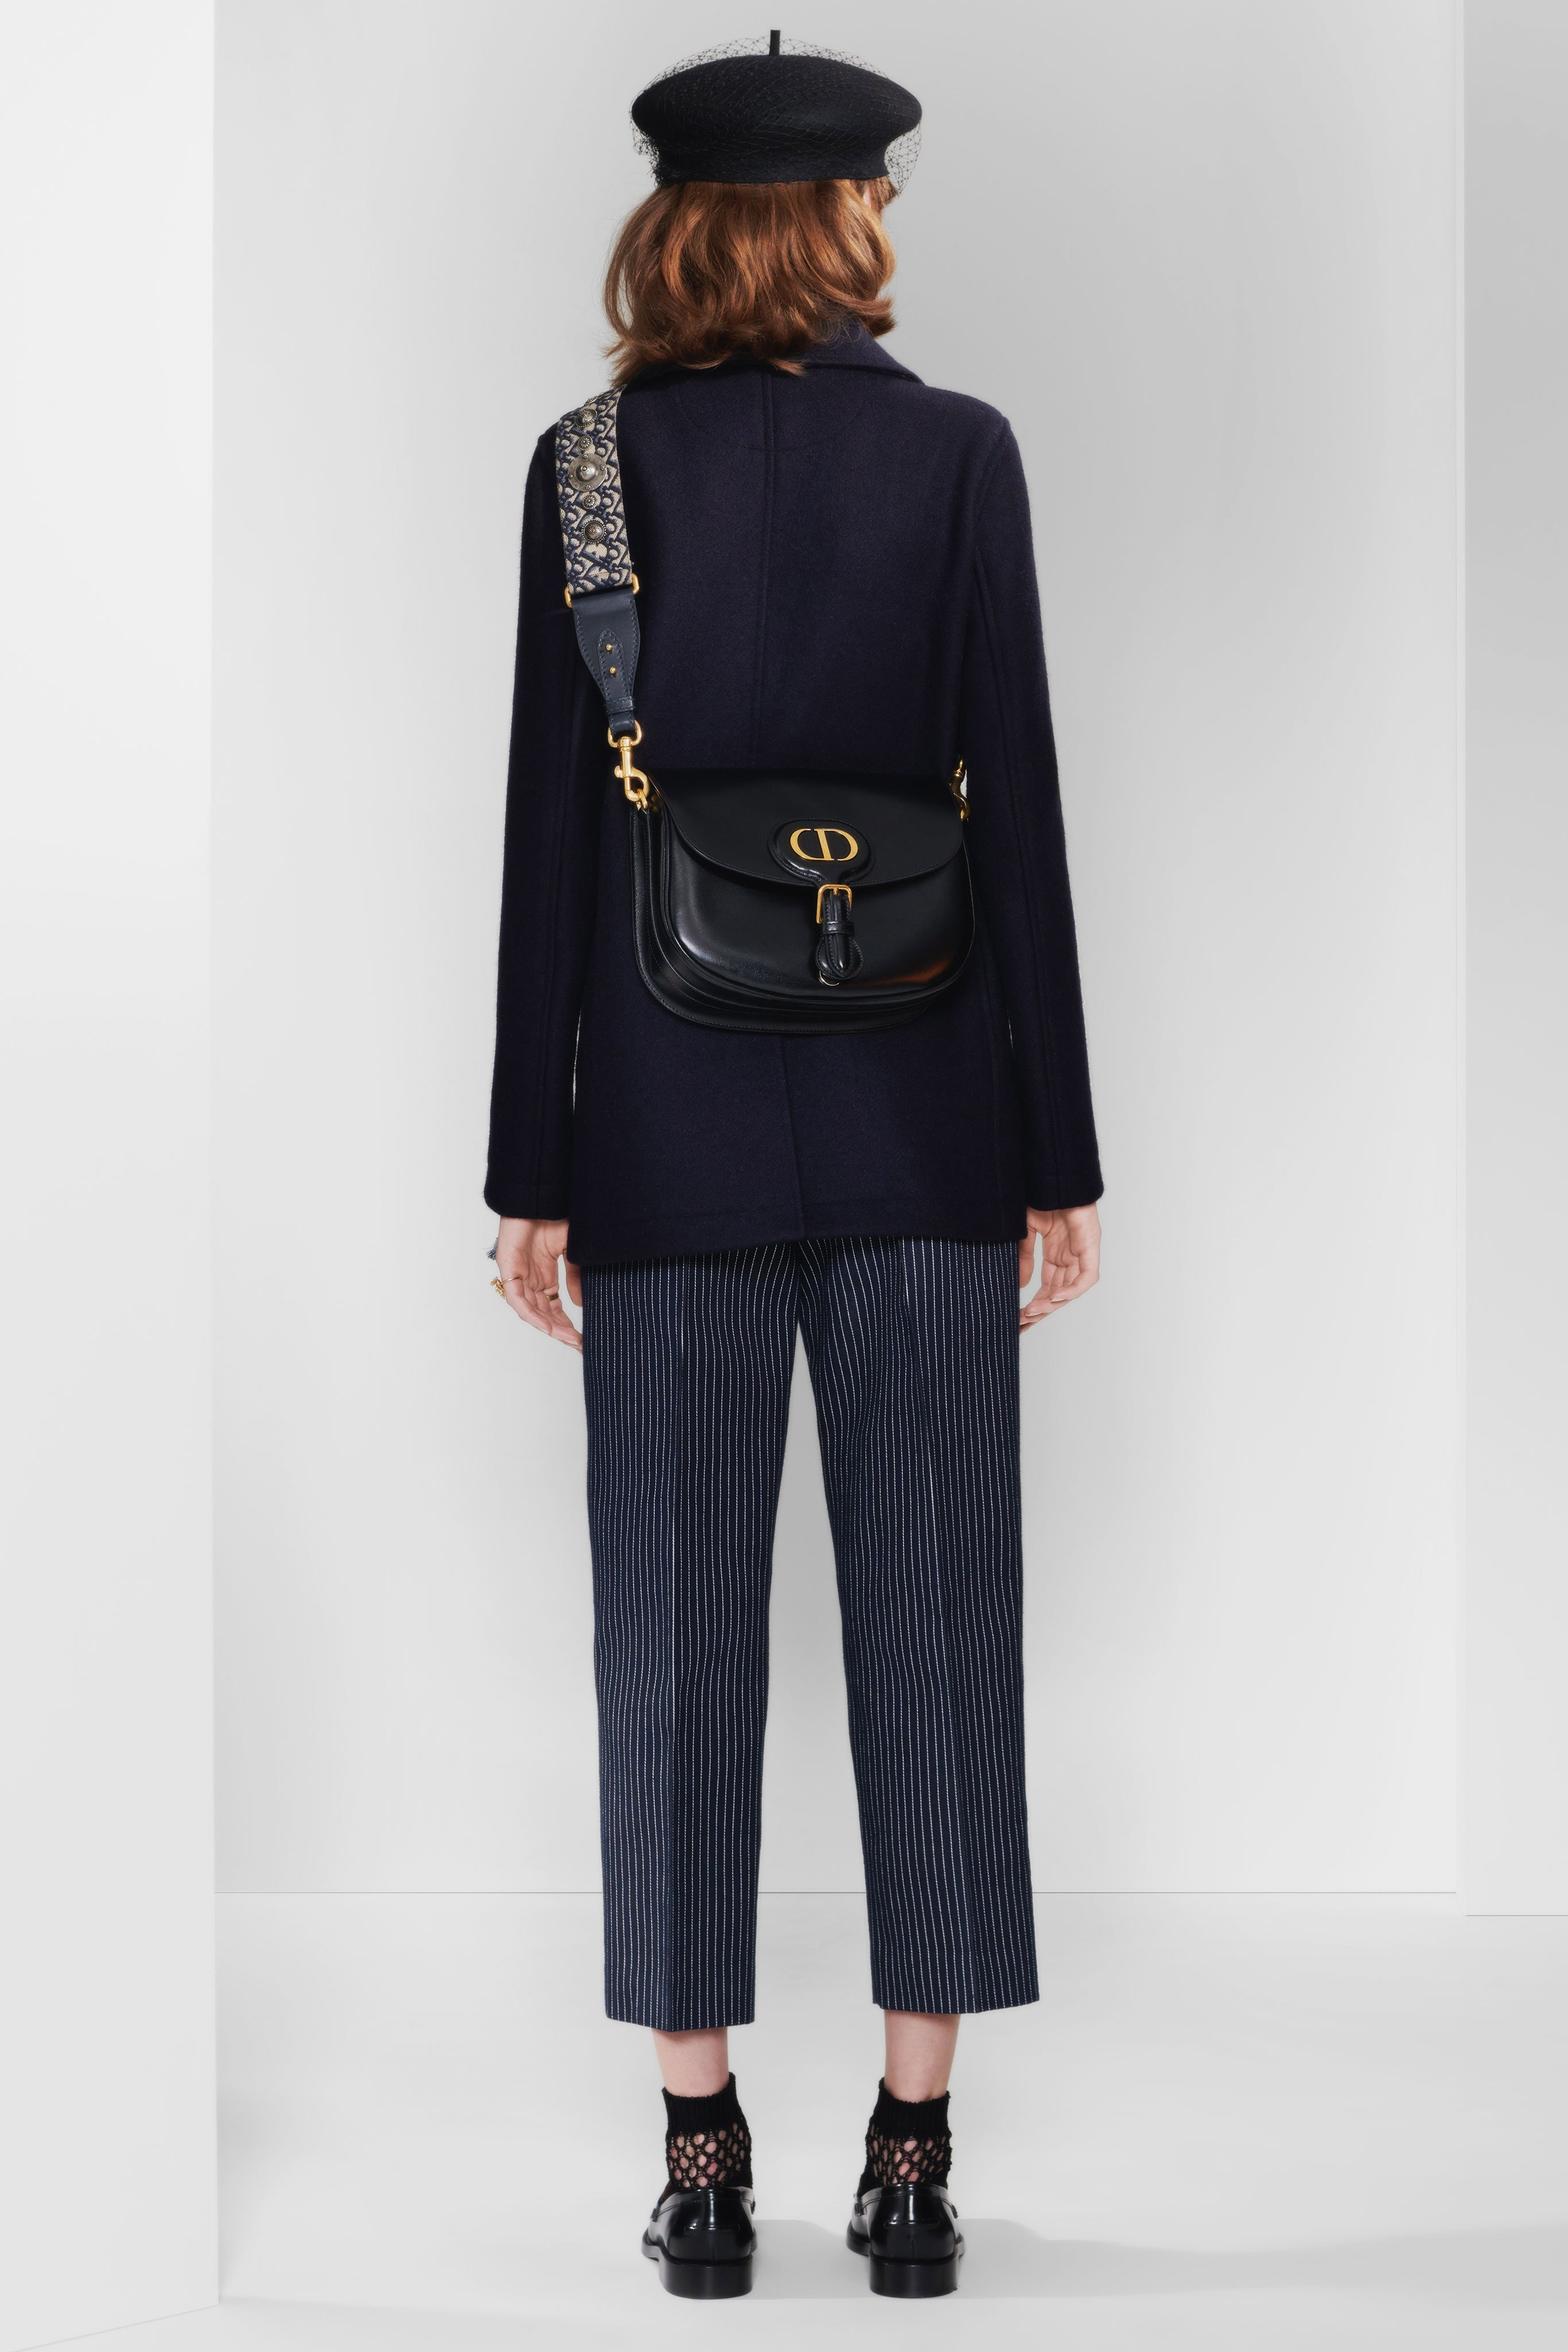 Dior Pre fall 2020 Lookbook trends runway coverage Ready To Wear Vogue Preppy